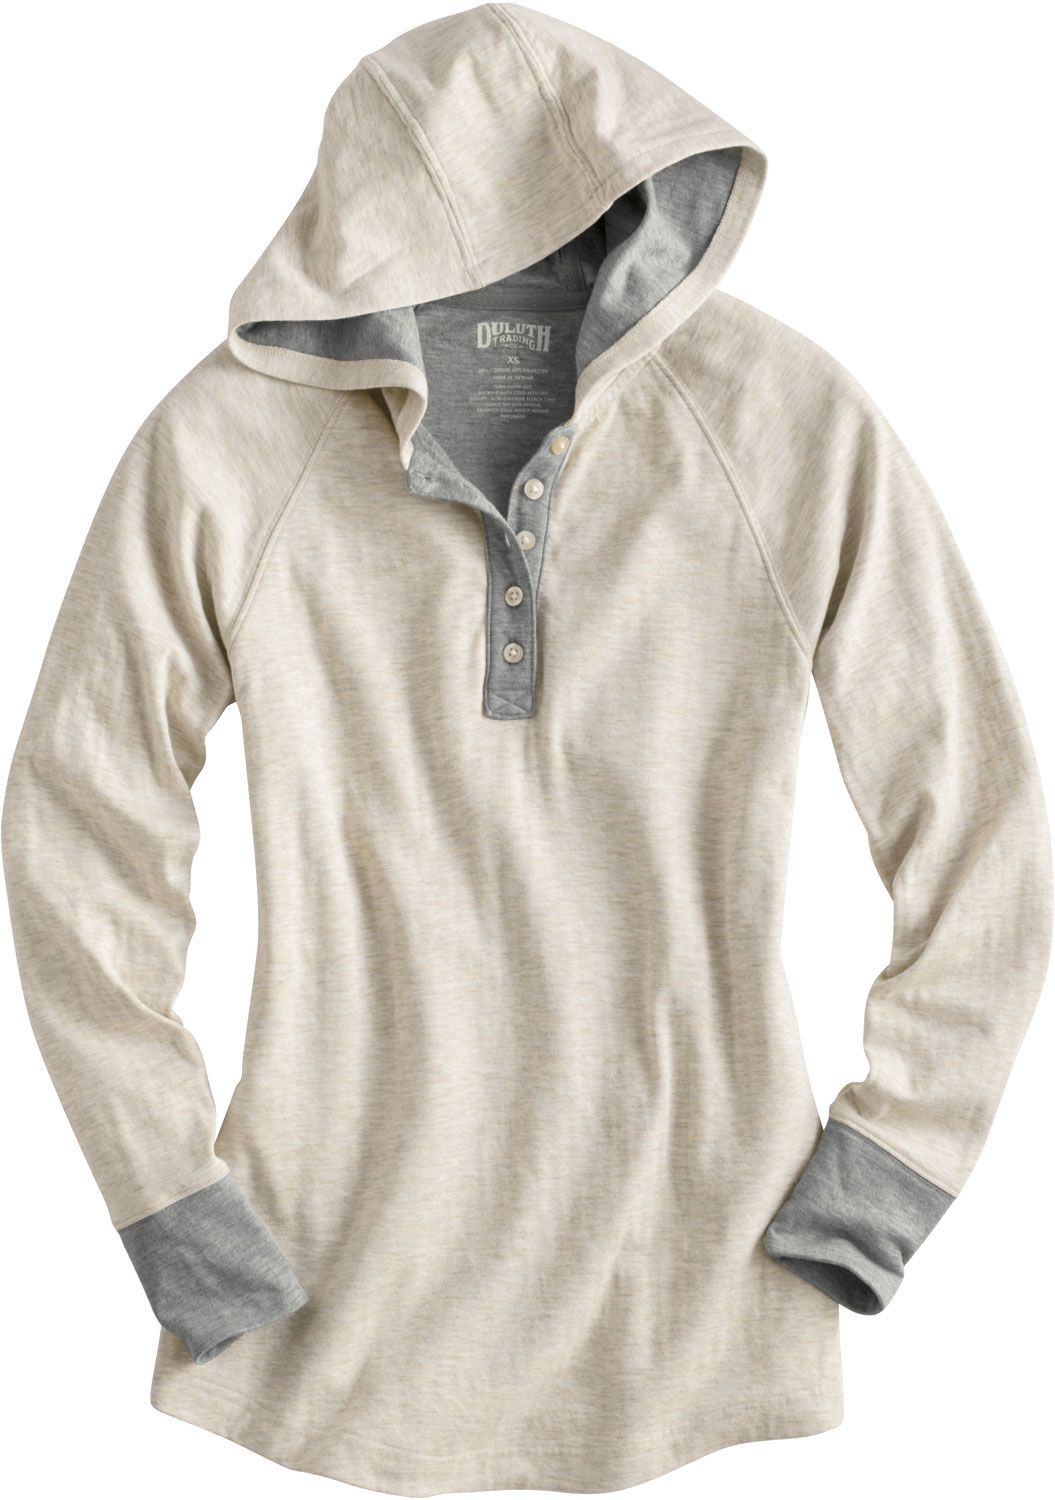 Duluth Trading's Double Soft Hoodie uses two lightweight layers ...